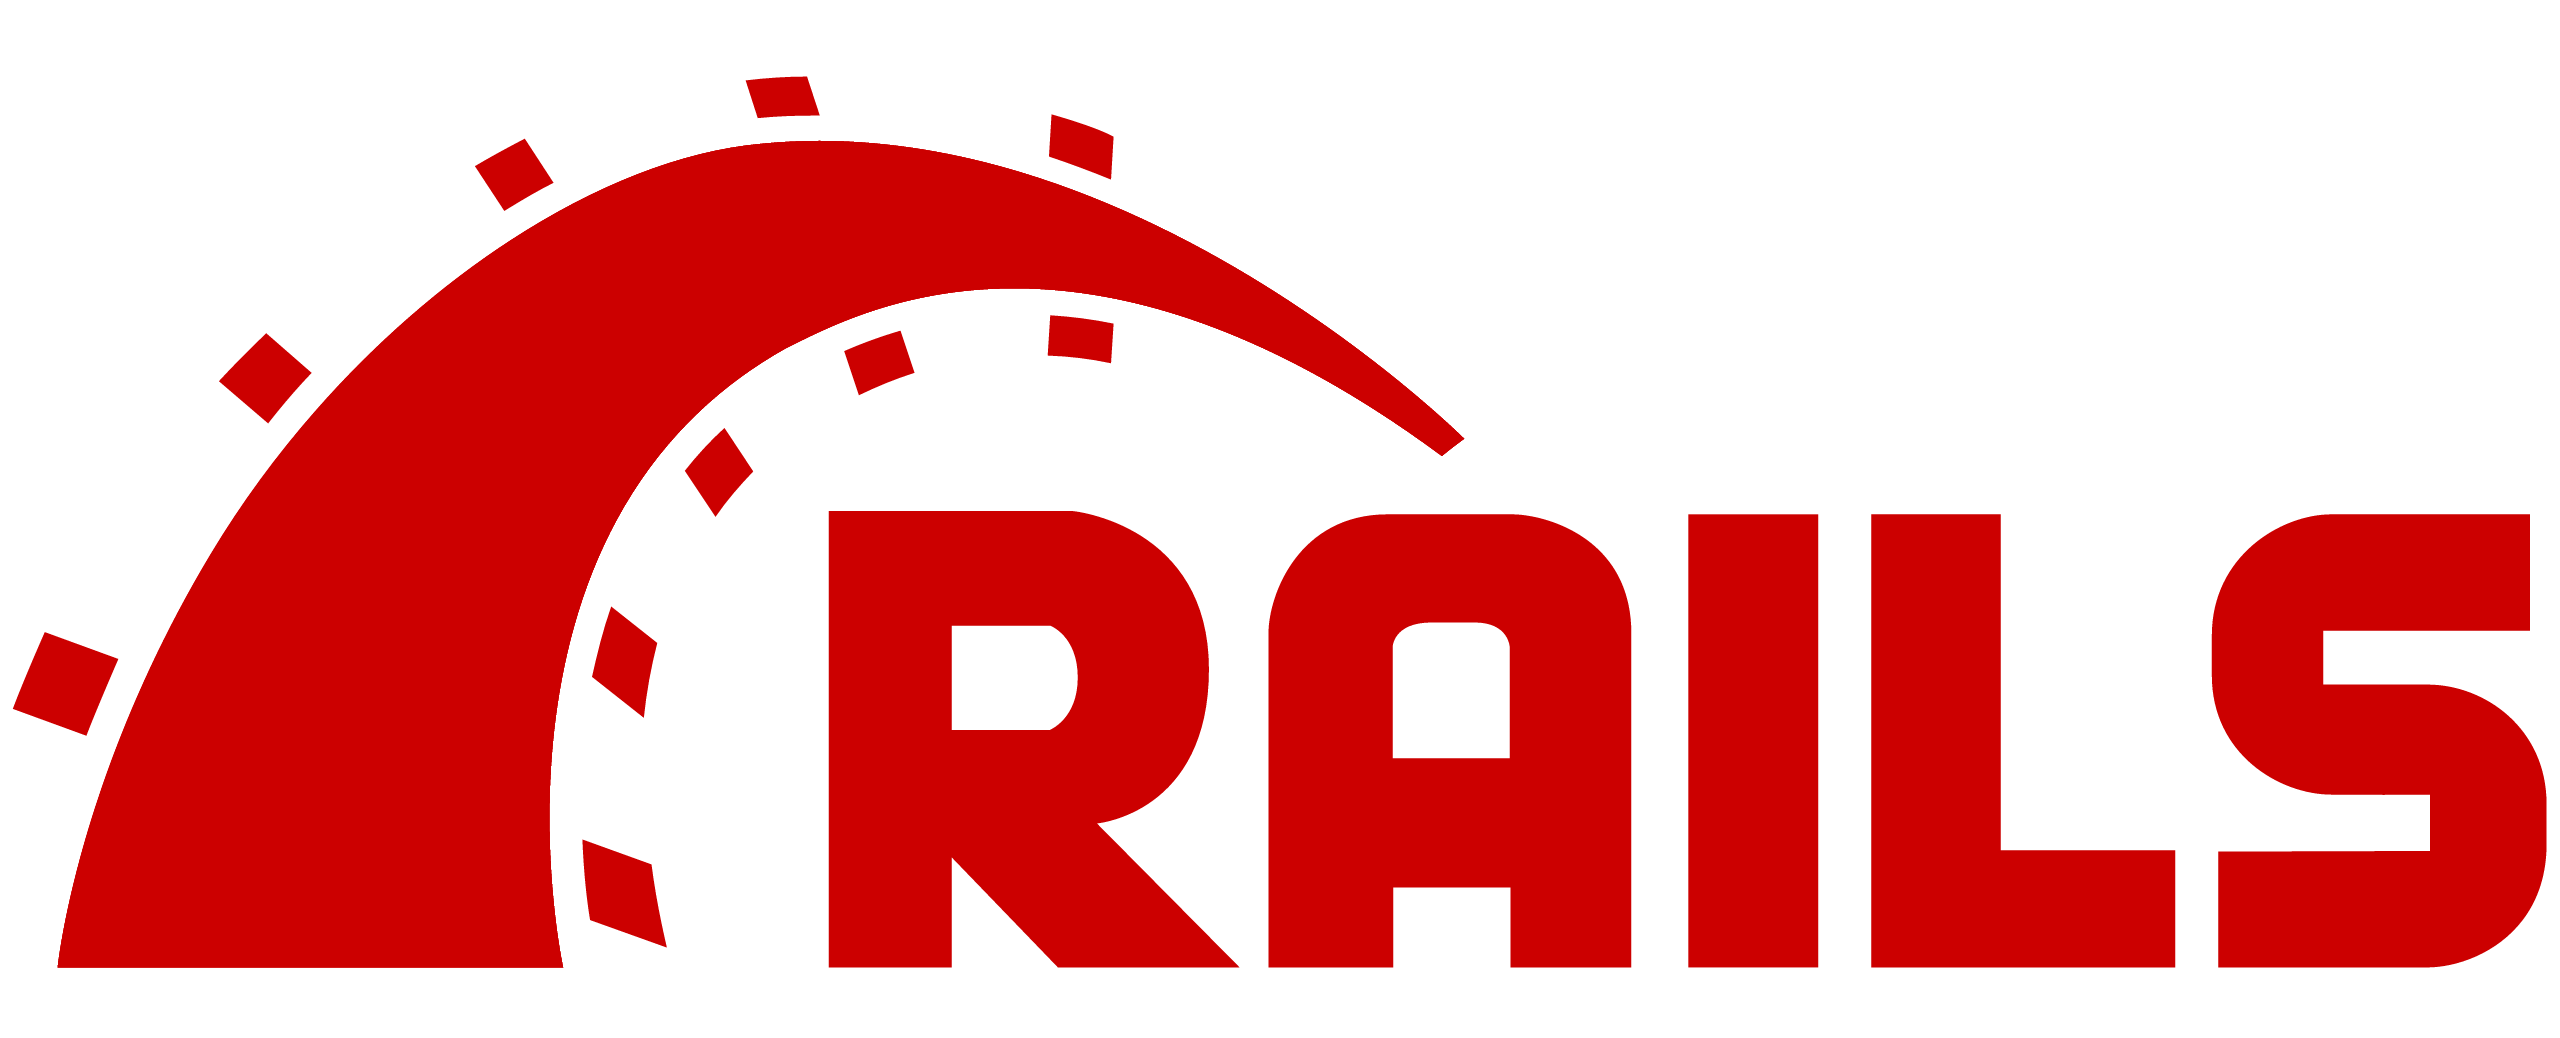 Ruby on Rails 5.1 has been released!